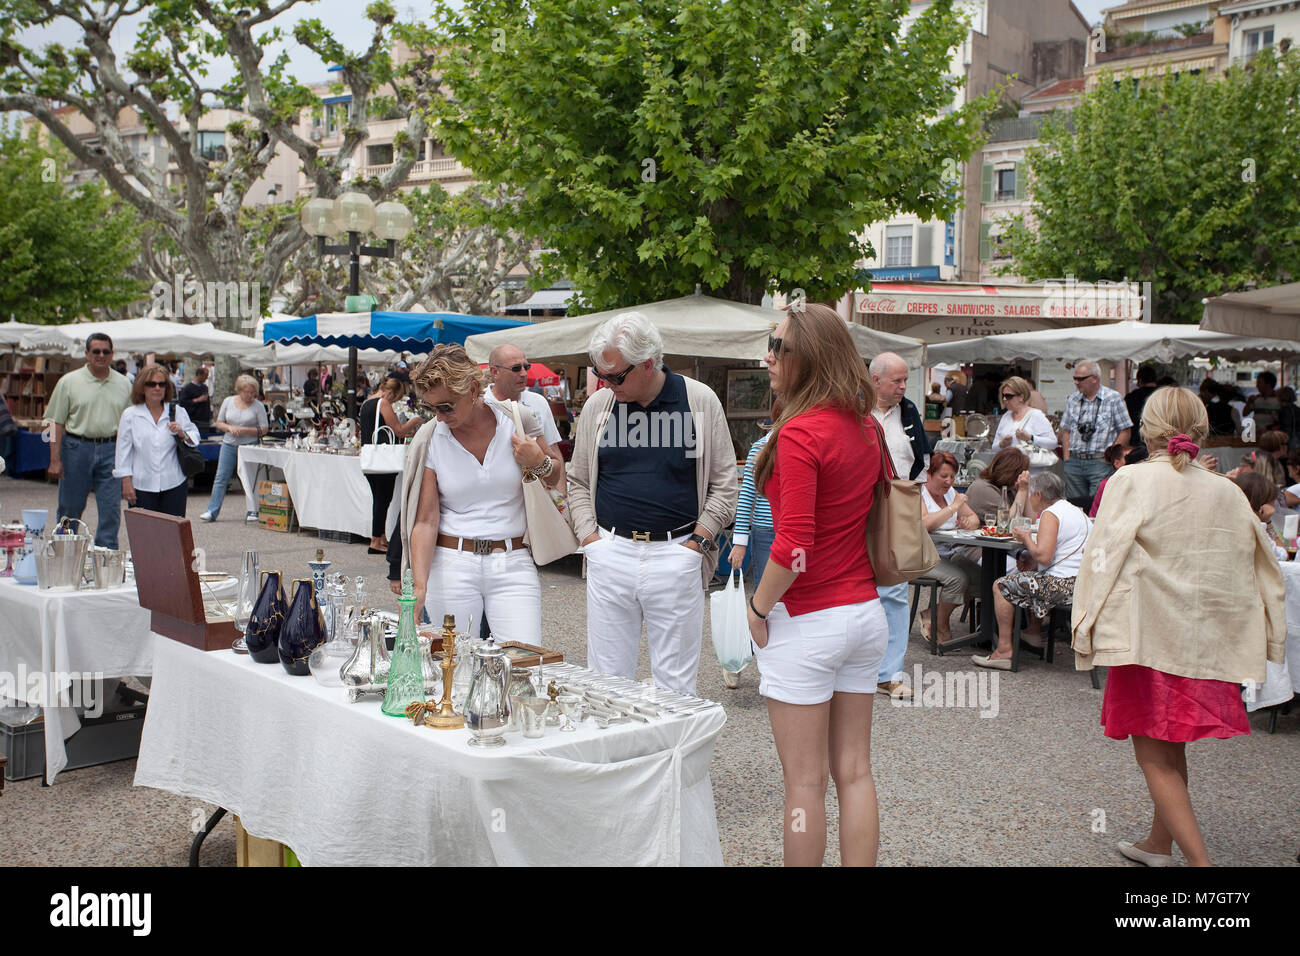 Flea market at Boulevard La Croisette, close to the old town Le Suquet, Cannes, french riviera, South France, France, - Stock Image